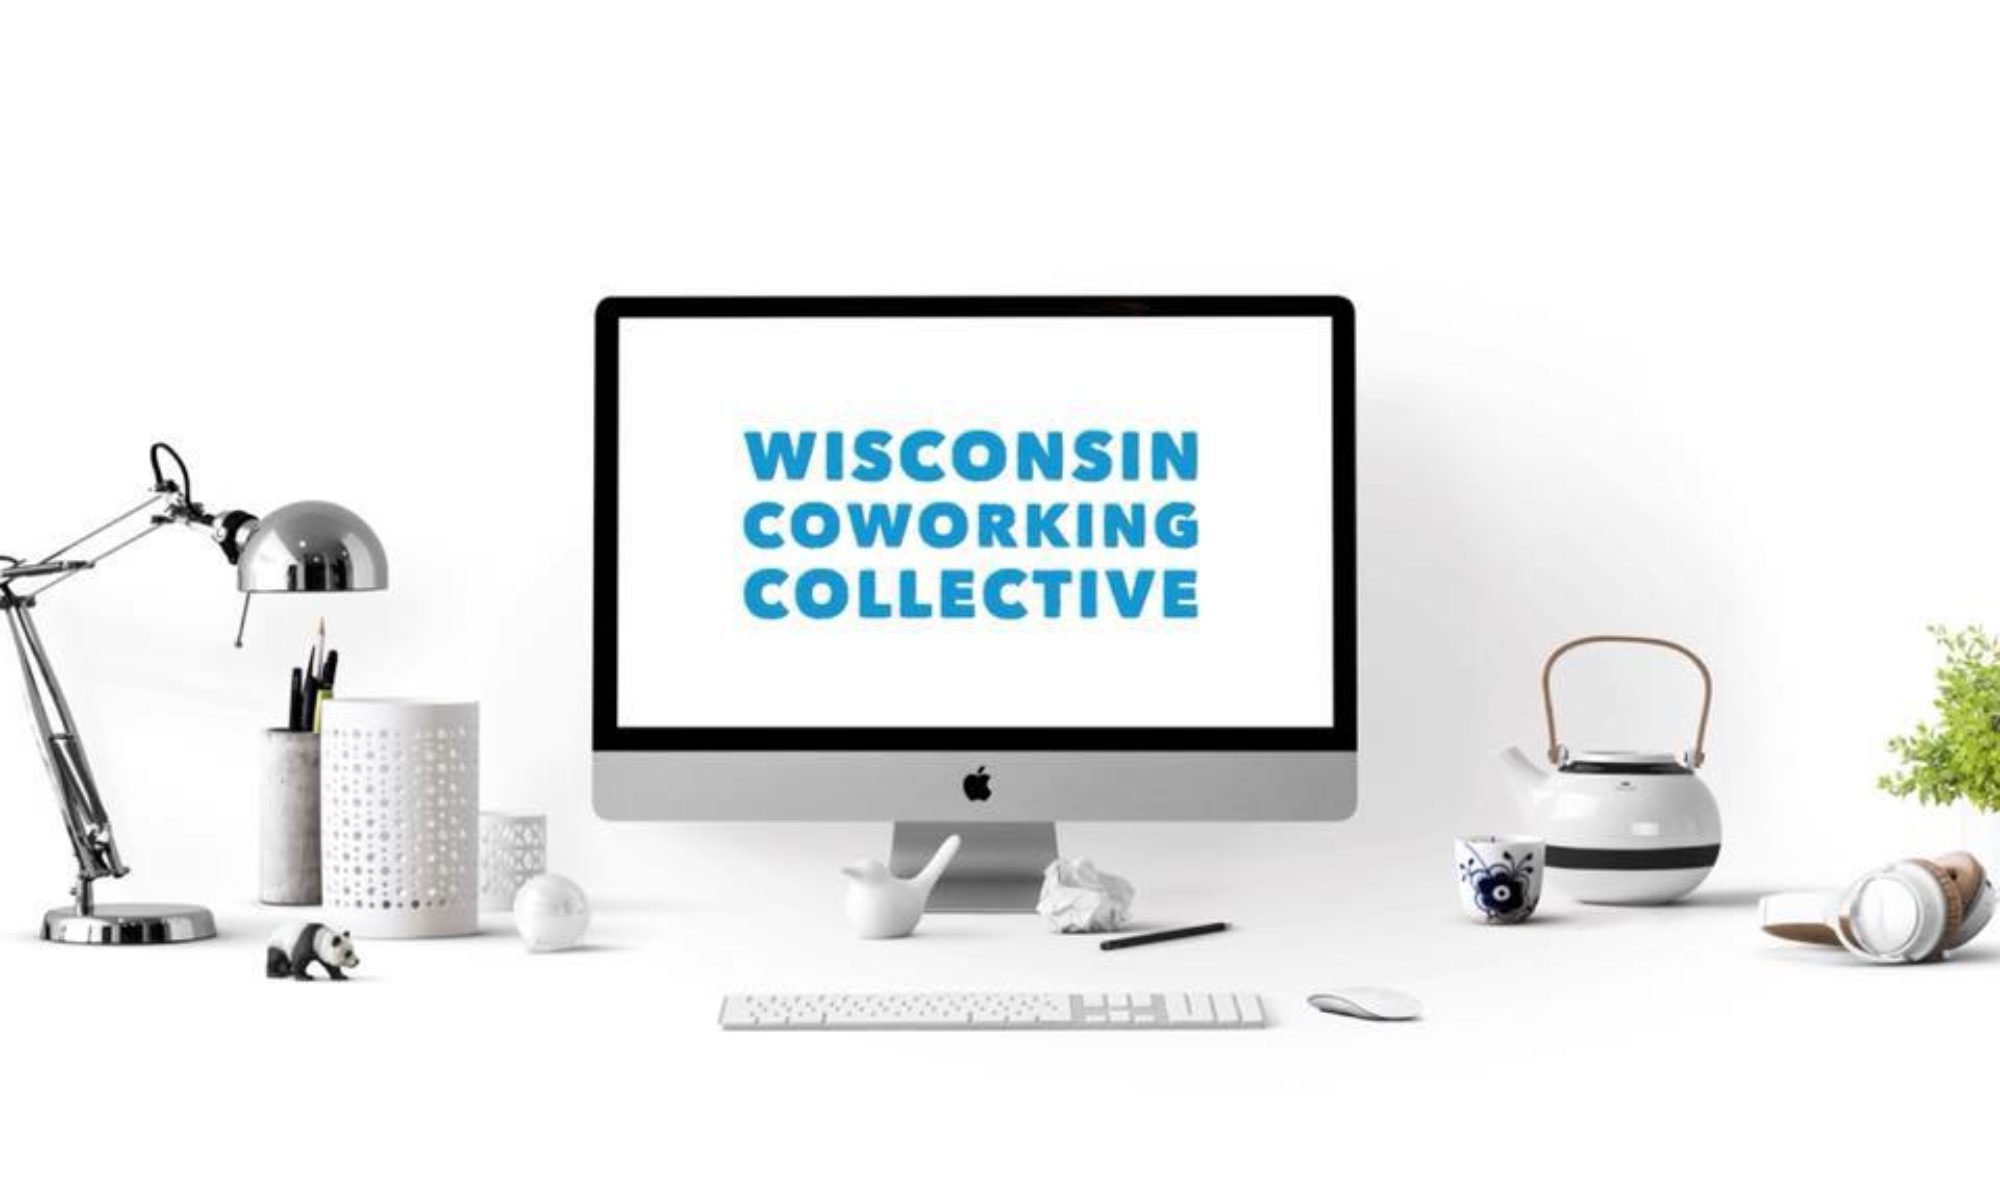 Wisconsin Coworking Collective